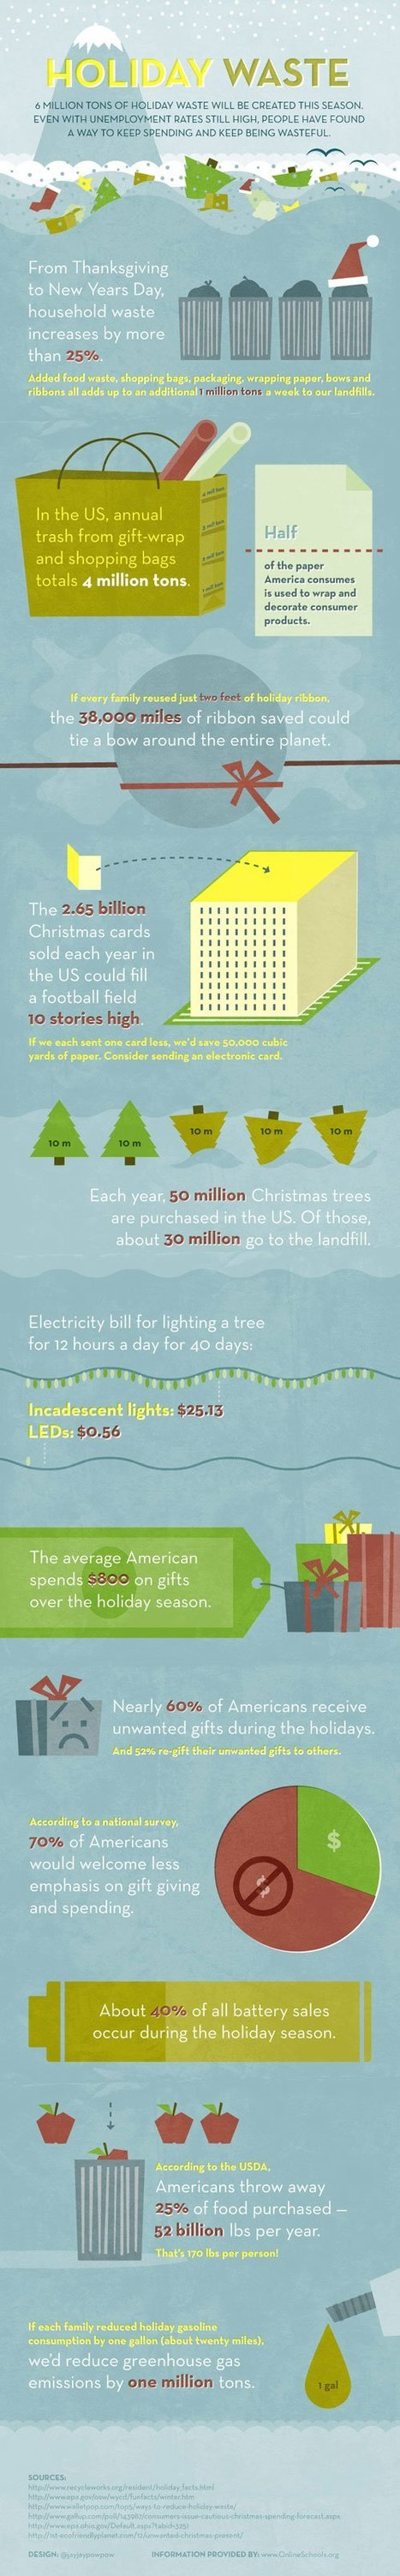 Top 10 Ways to Go Green this Holiday Season | Edison High - AP Human Geography | Scoop.it